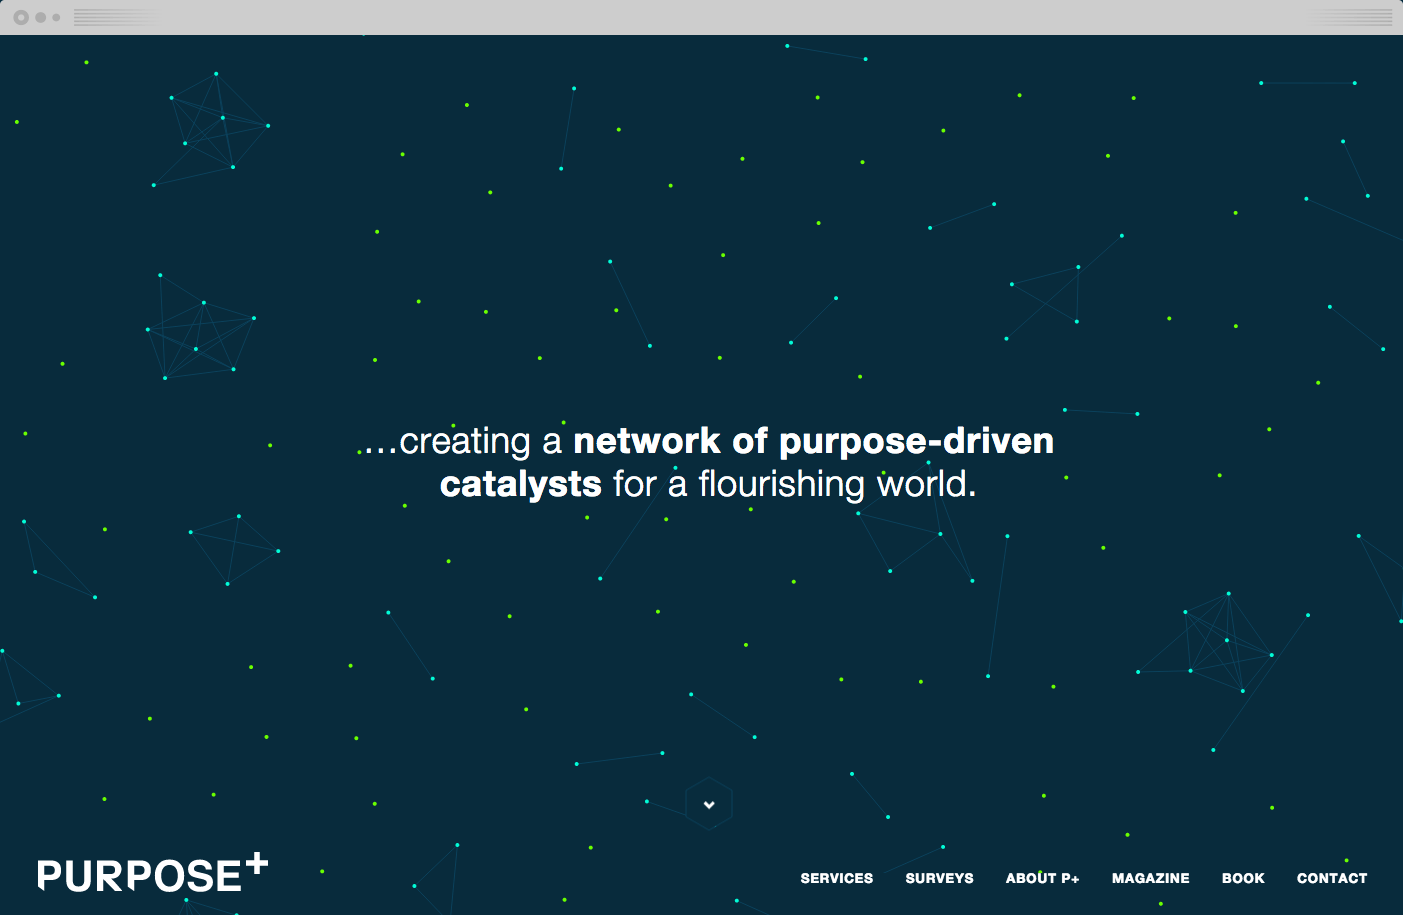 The interactive animation on the homepage